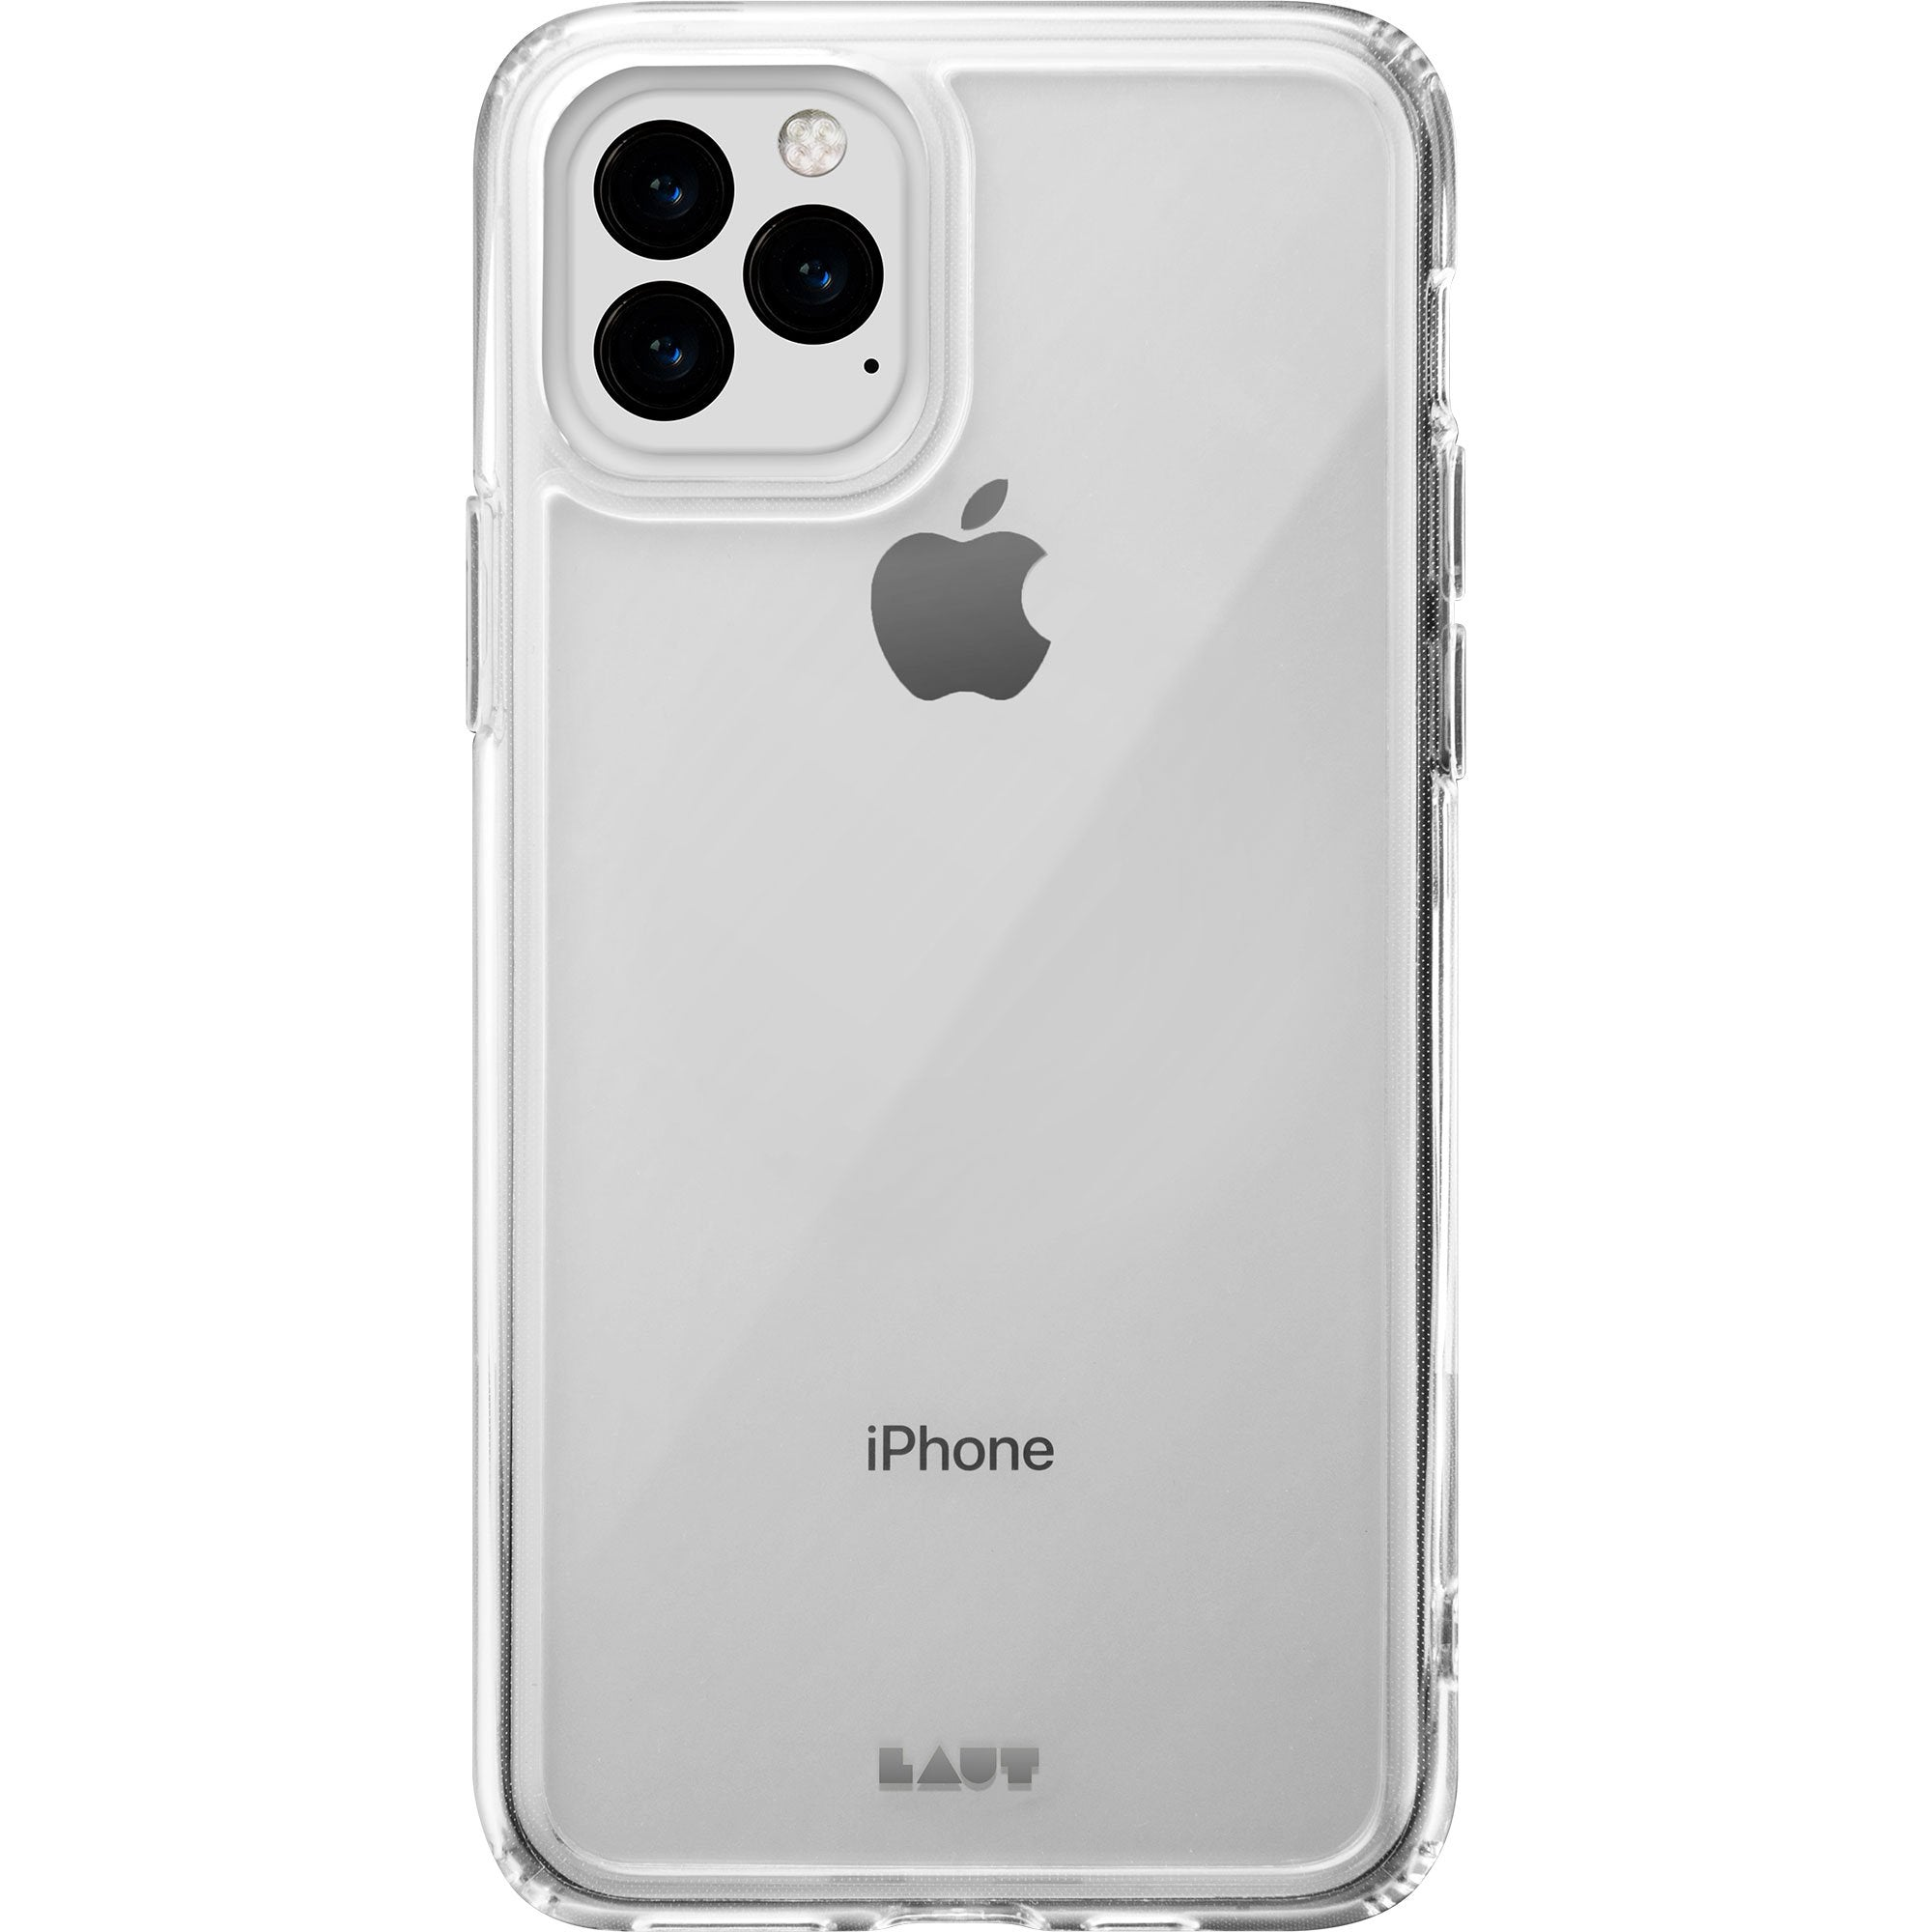 CRYSTAL-X for iPhone 11 Series - LAUT Japan